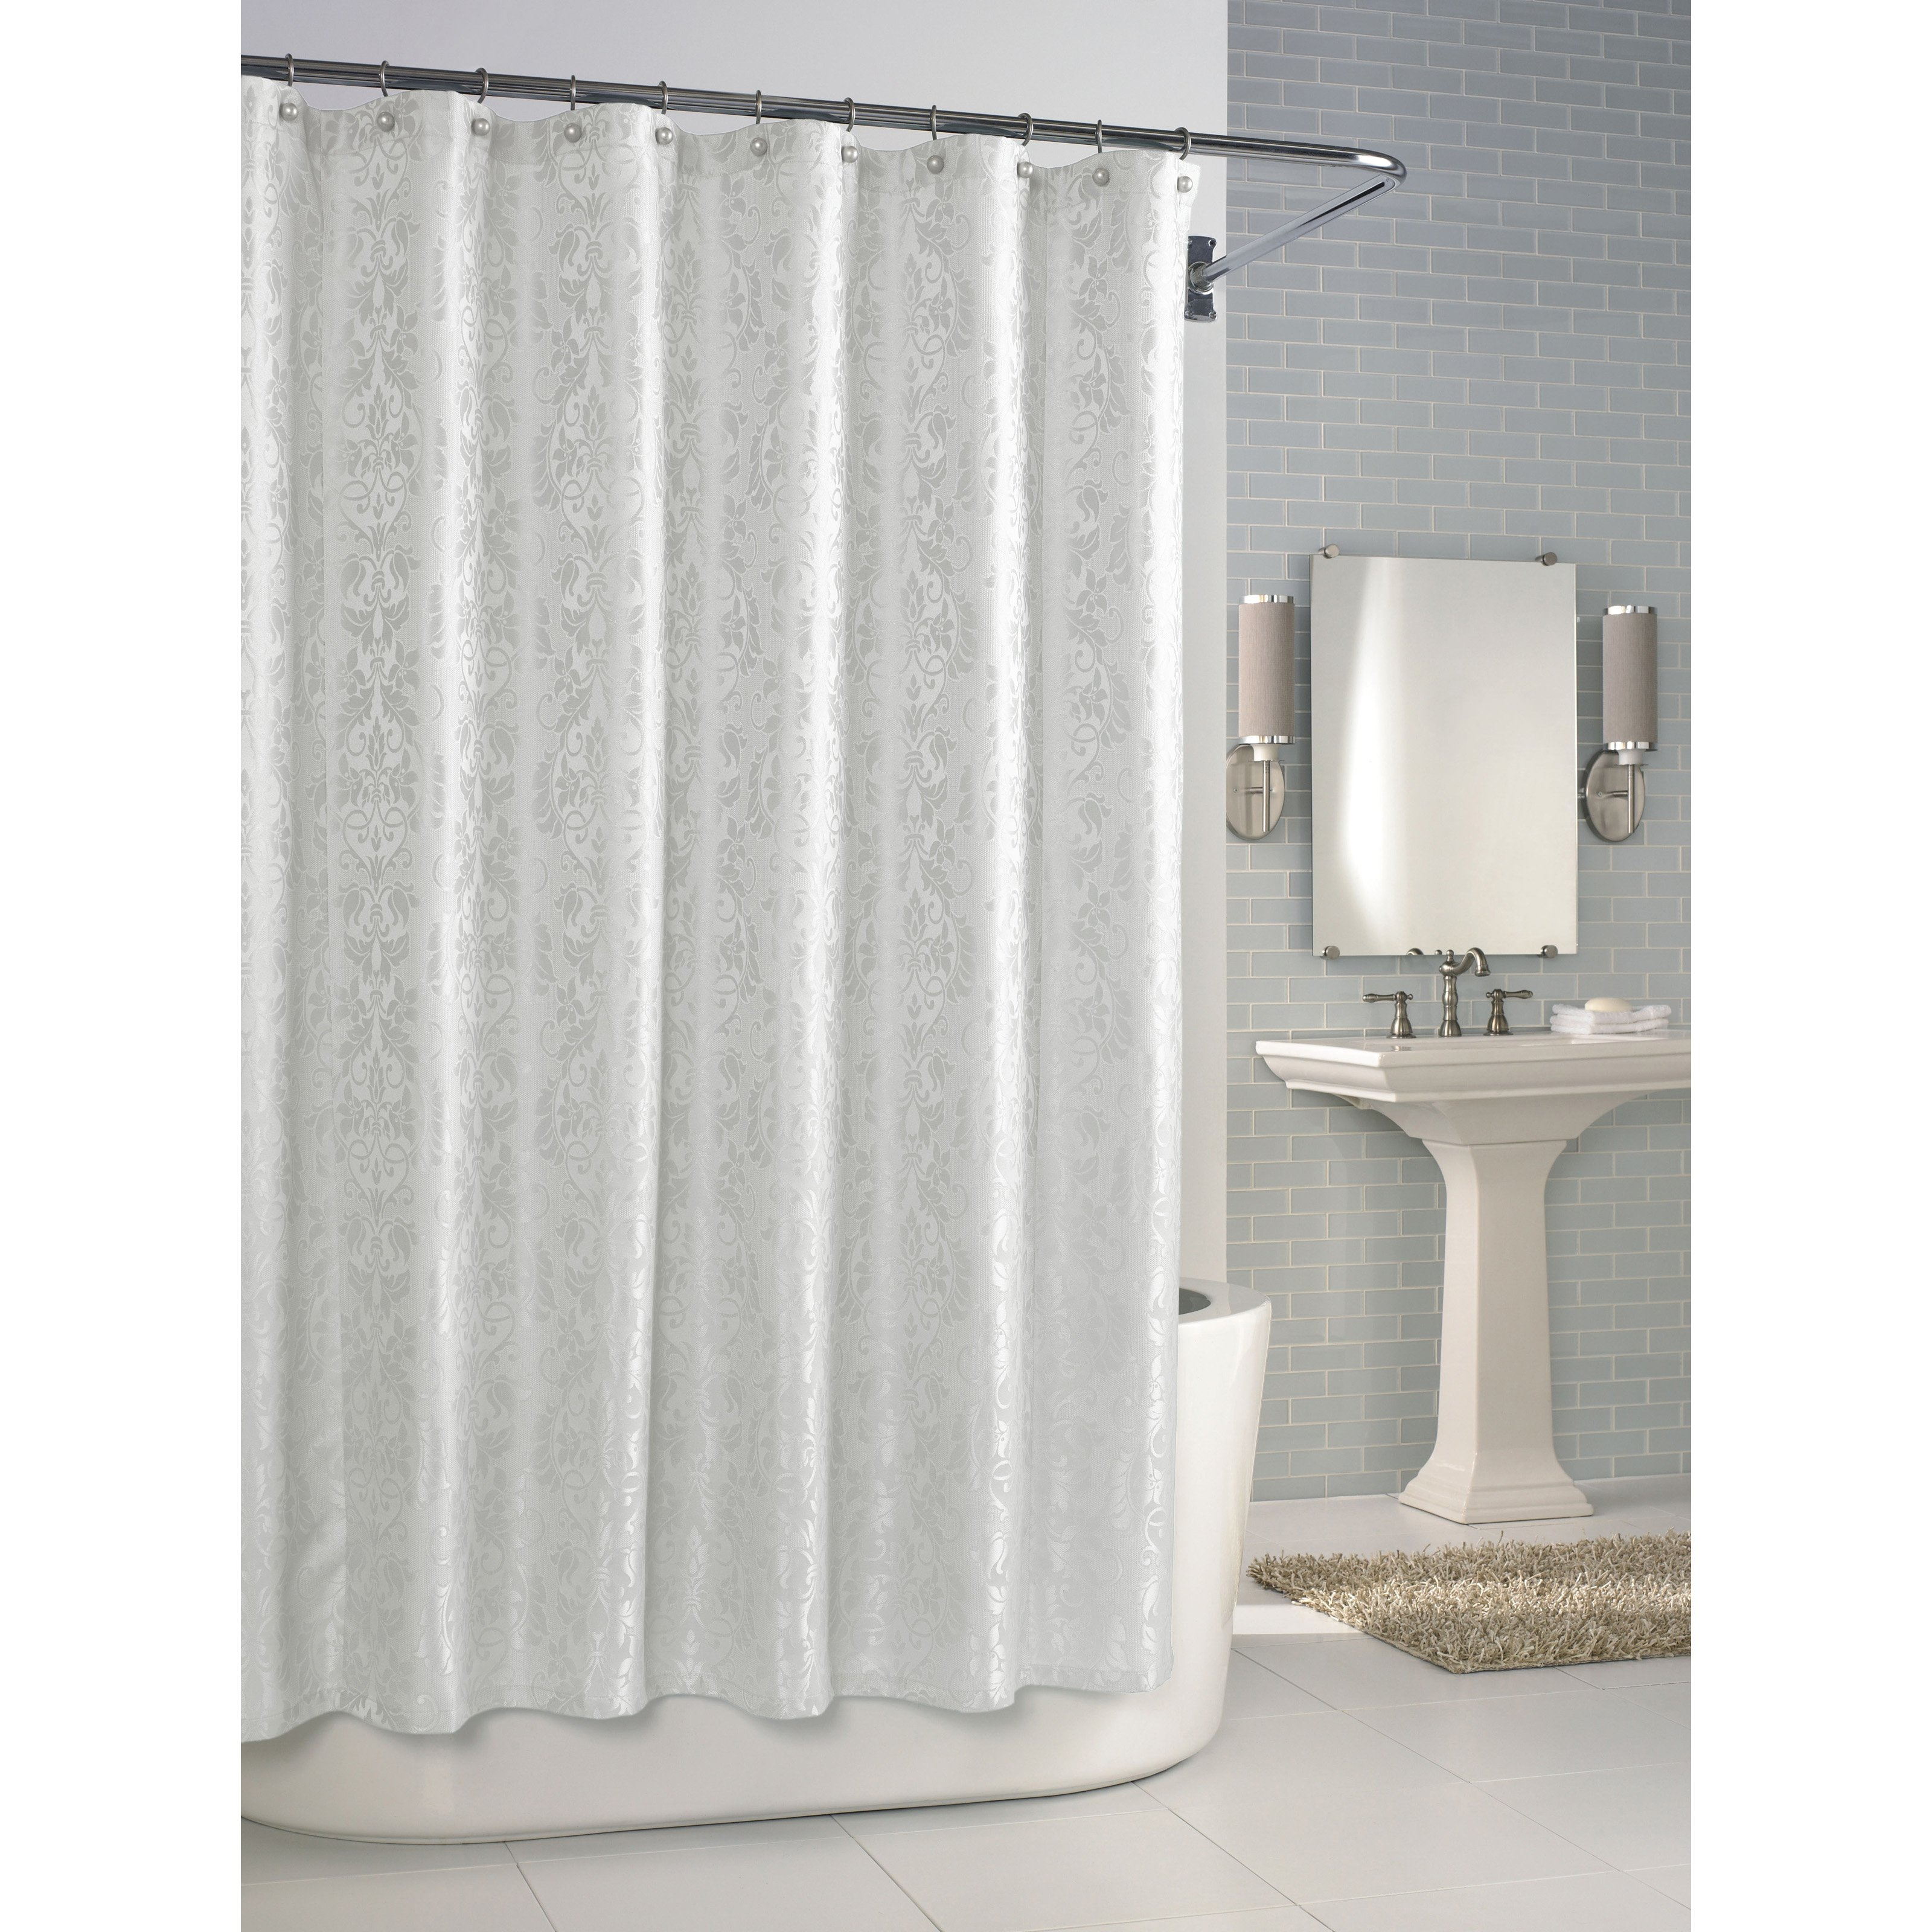 Shower Curtain Liner For Curved Rod • Shower Curtains Ideas